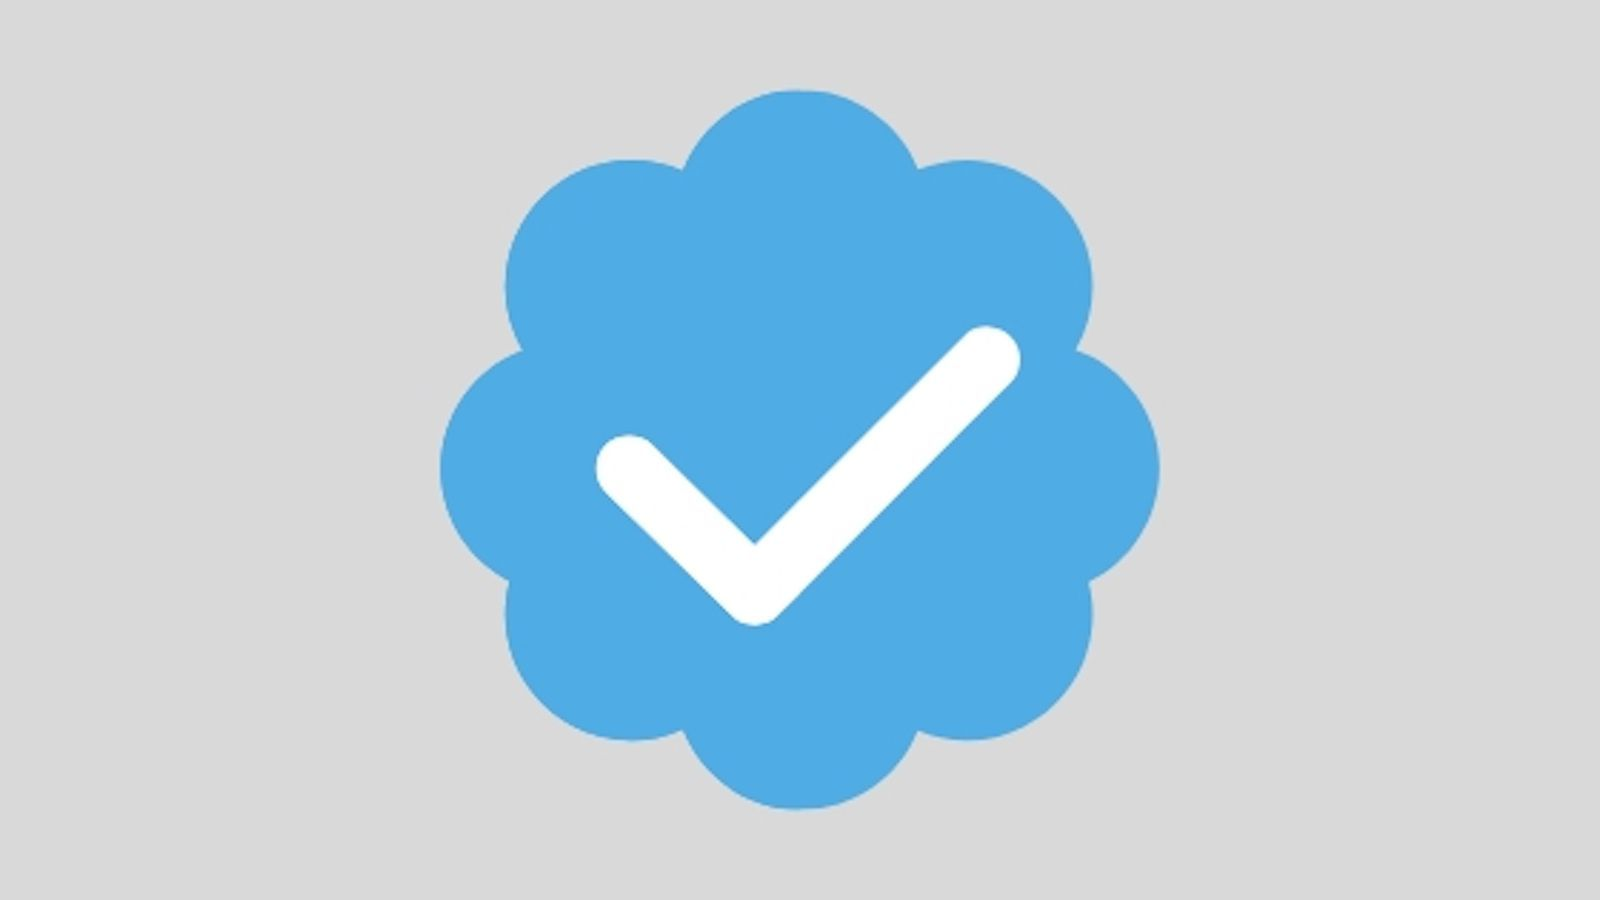 What You Need To Know About Getting Your Twitter Account Verified Instagram Symbols Instagram Likes And Followers Credit Card App